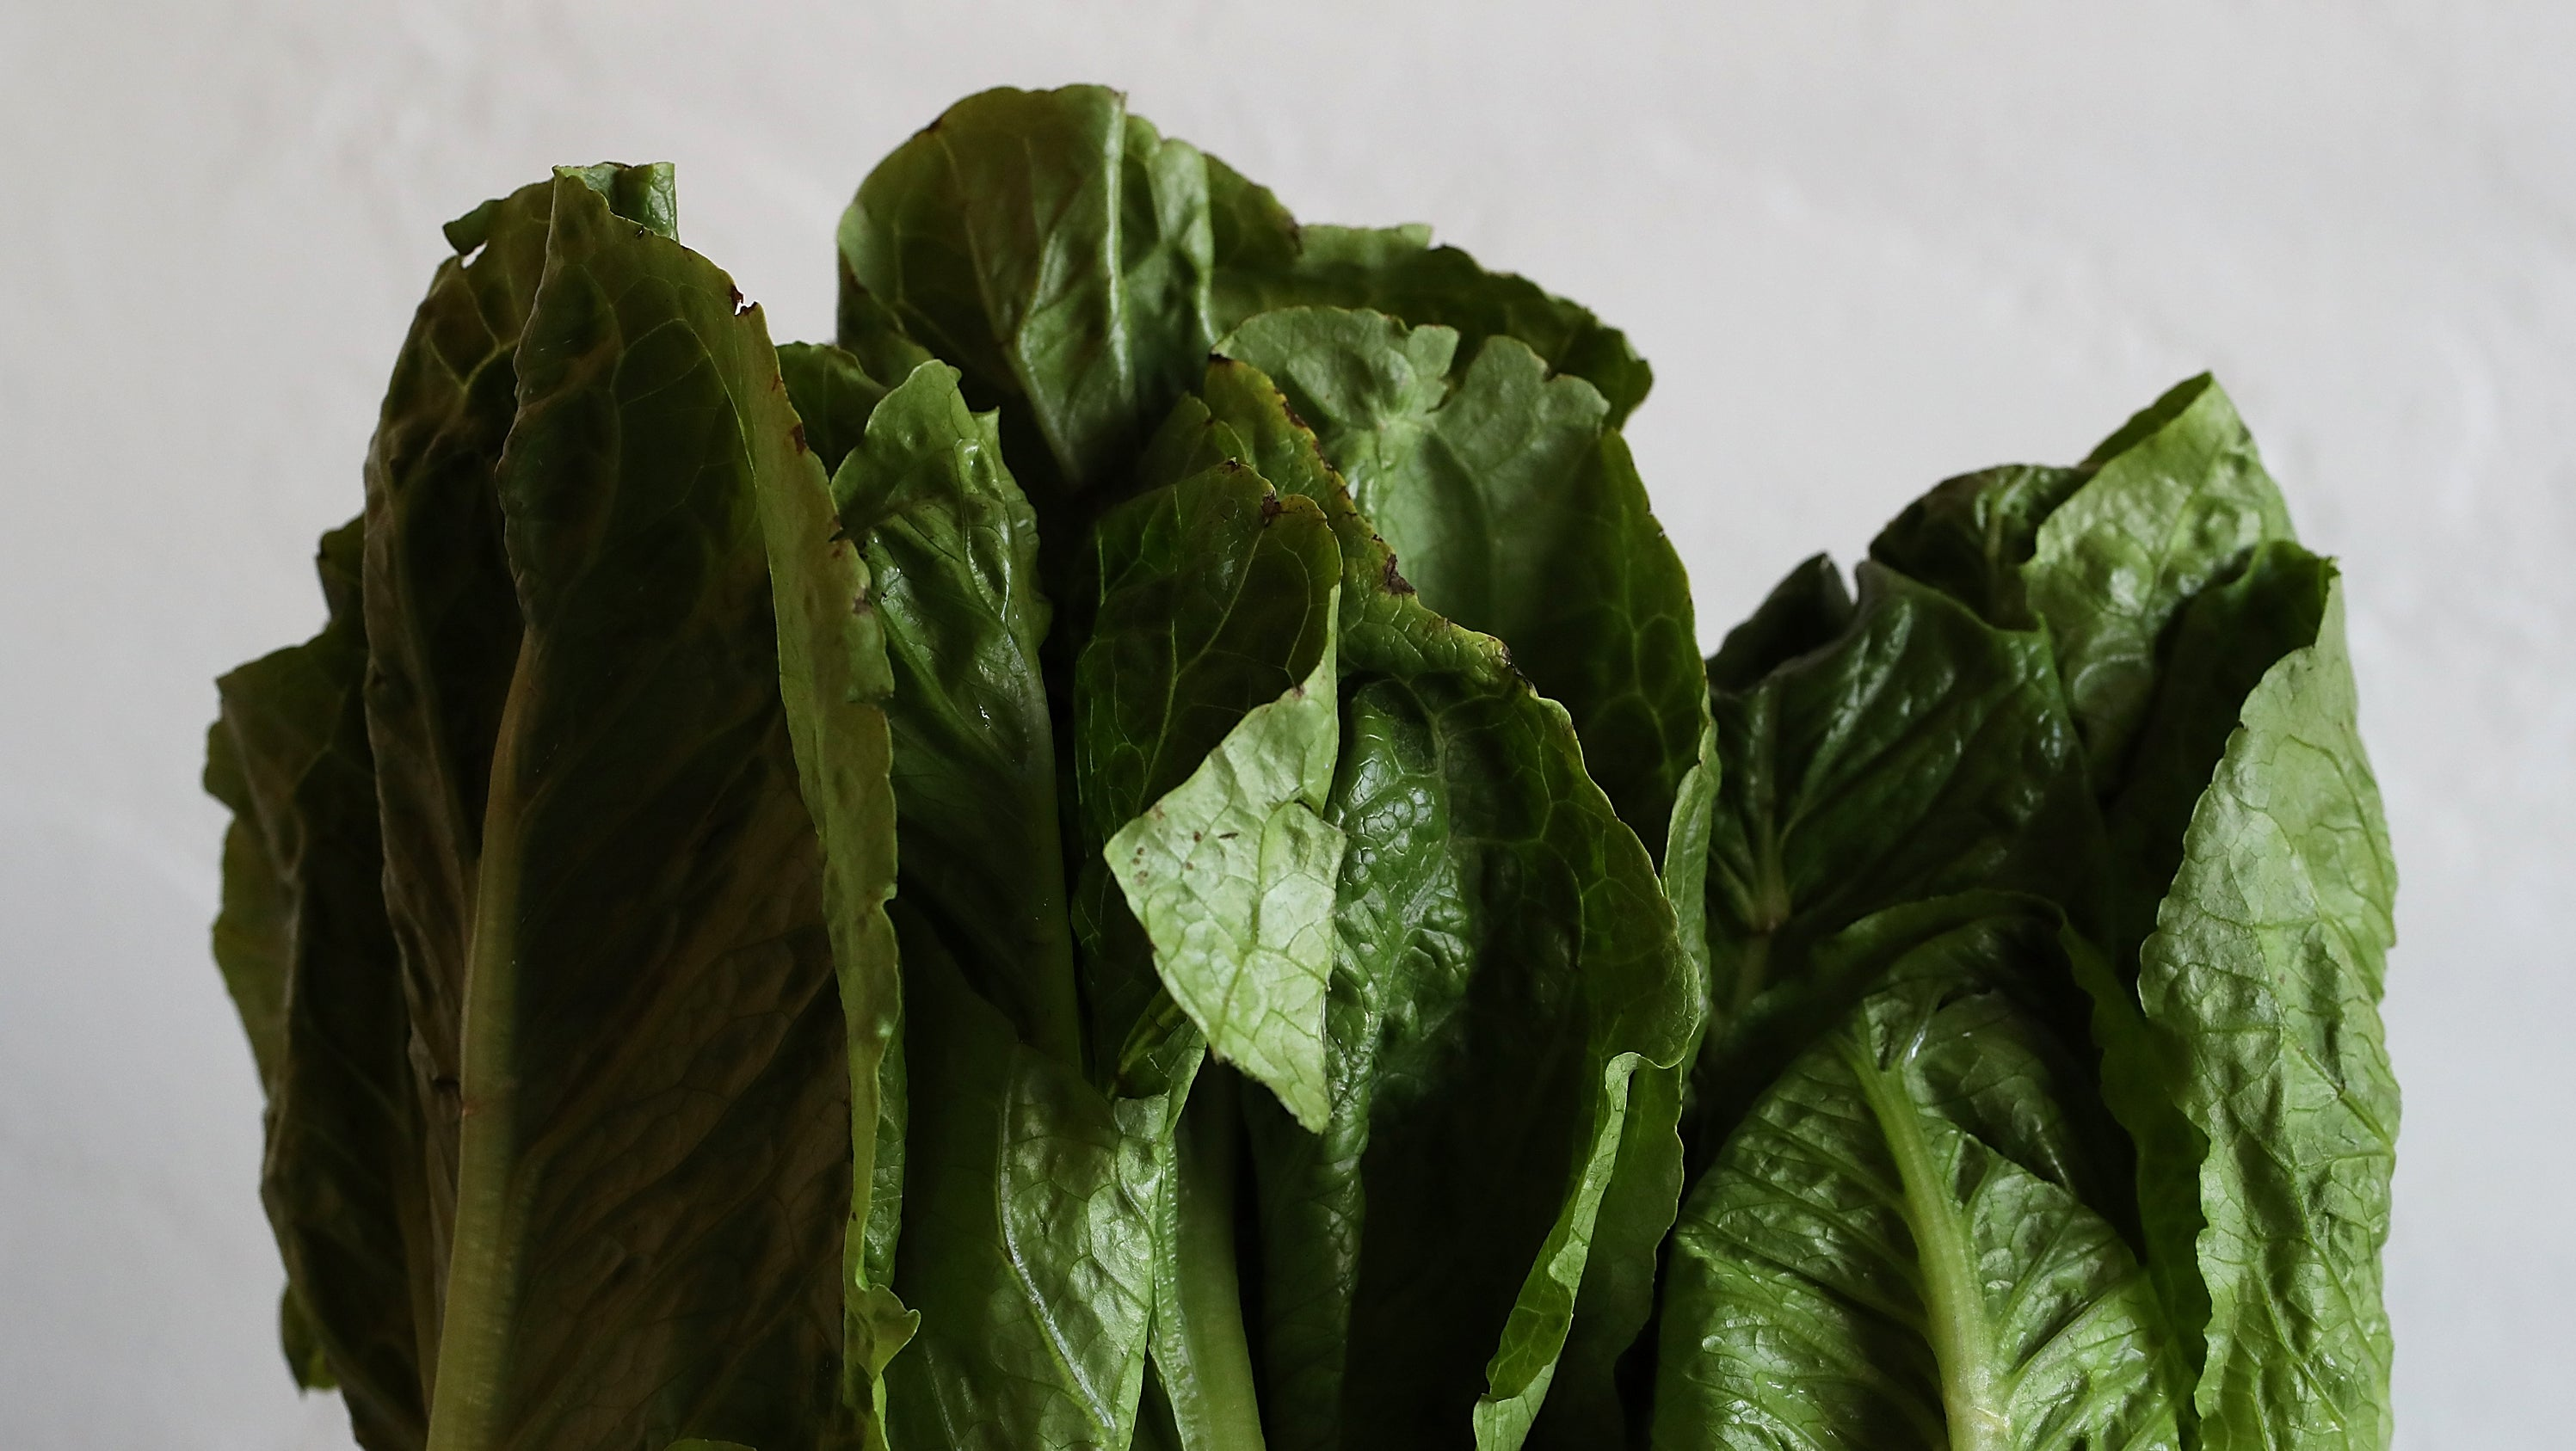 59 People Now Sickened By E. Coli Cos Lettuce As Investigation Continues